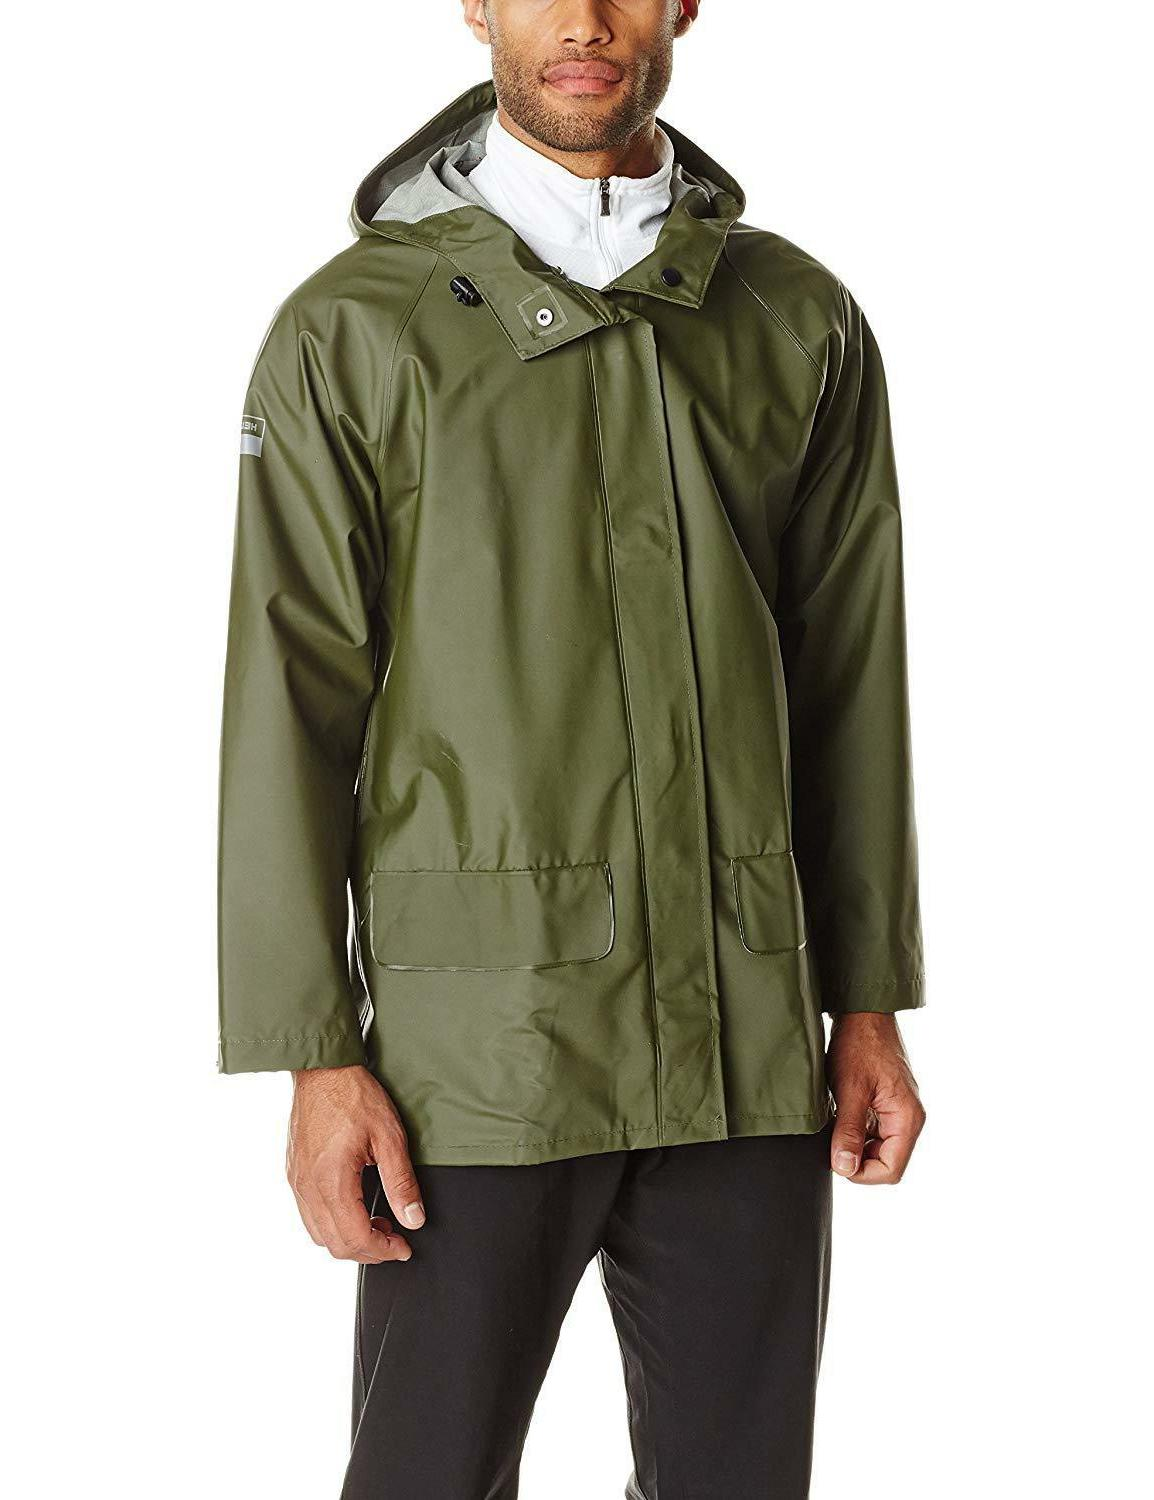 Helly Workwear Men's Mandal Rain Jacket